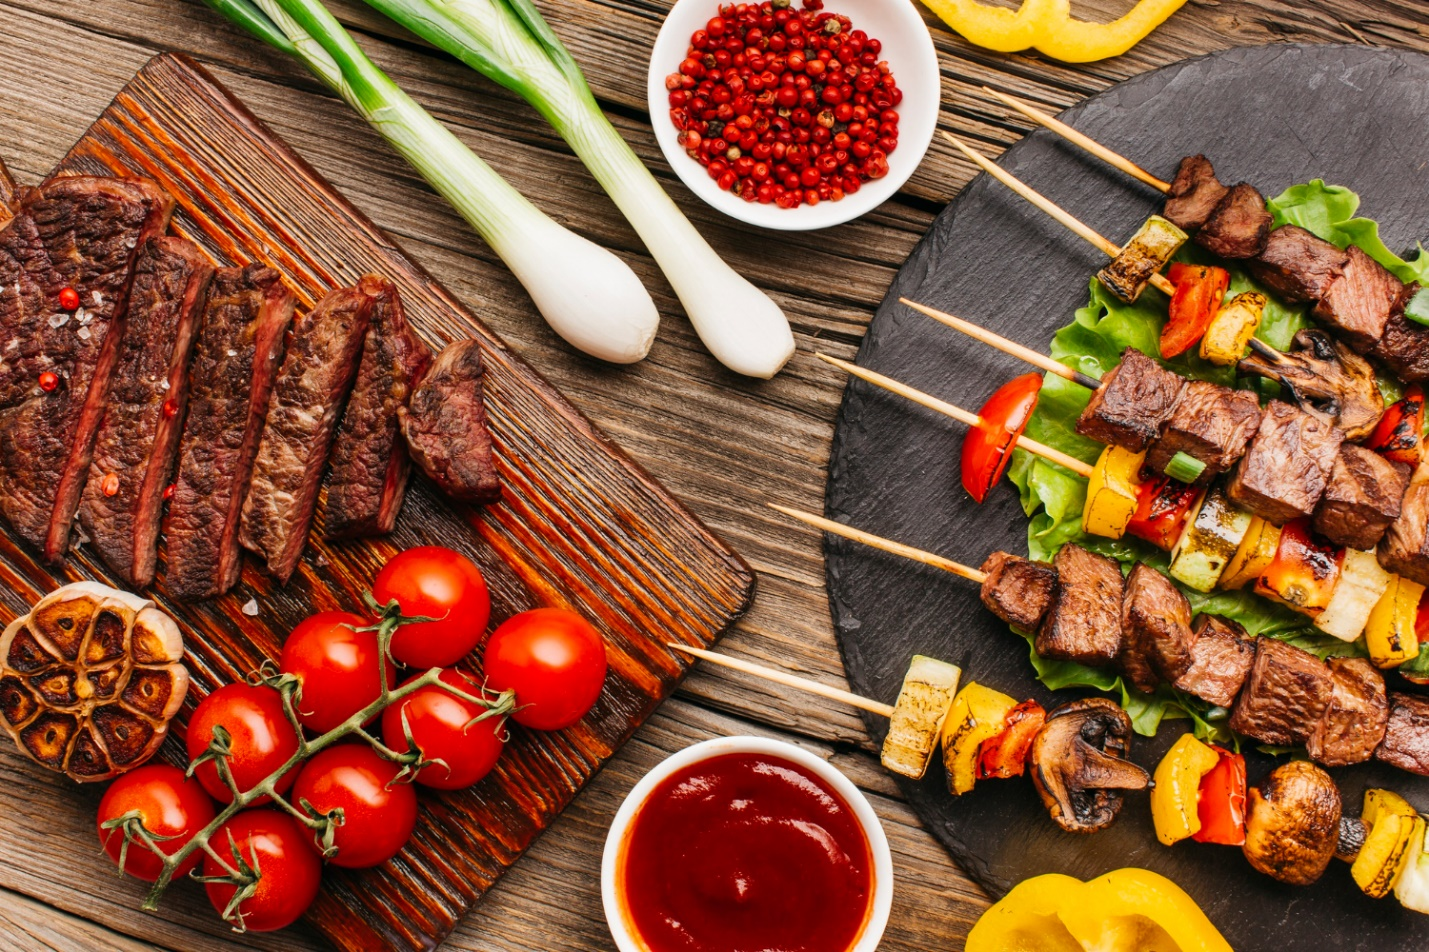 C:\Users\Dell\Downloads\delicious-grilled-meat-steak-with-fresh-vegetable (1).jpg